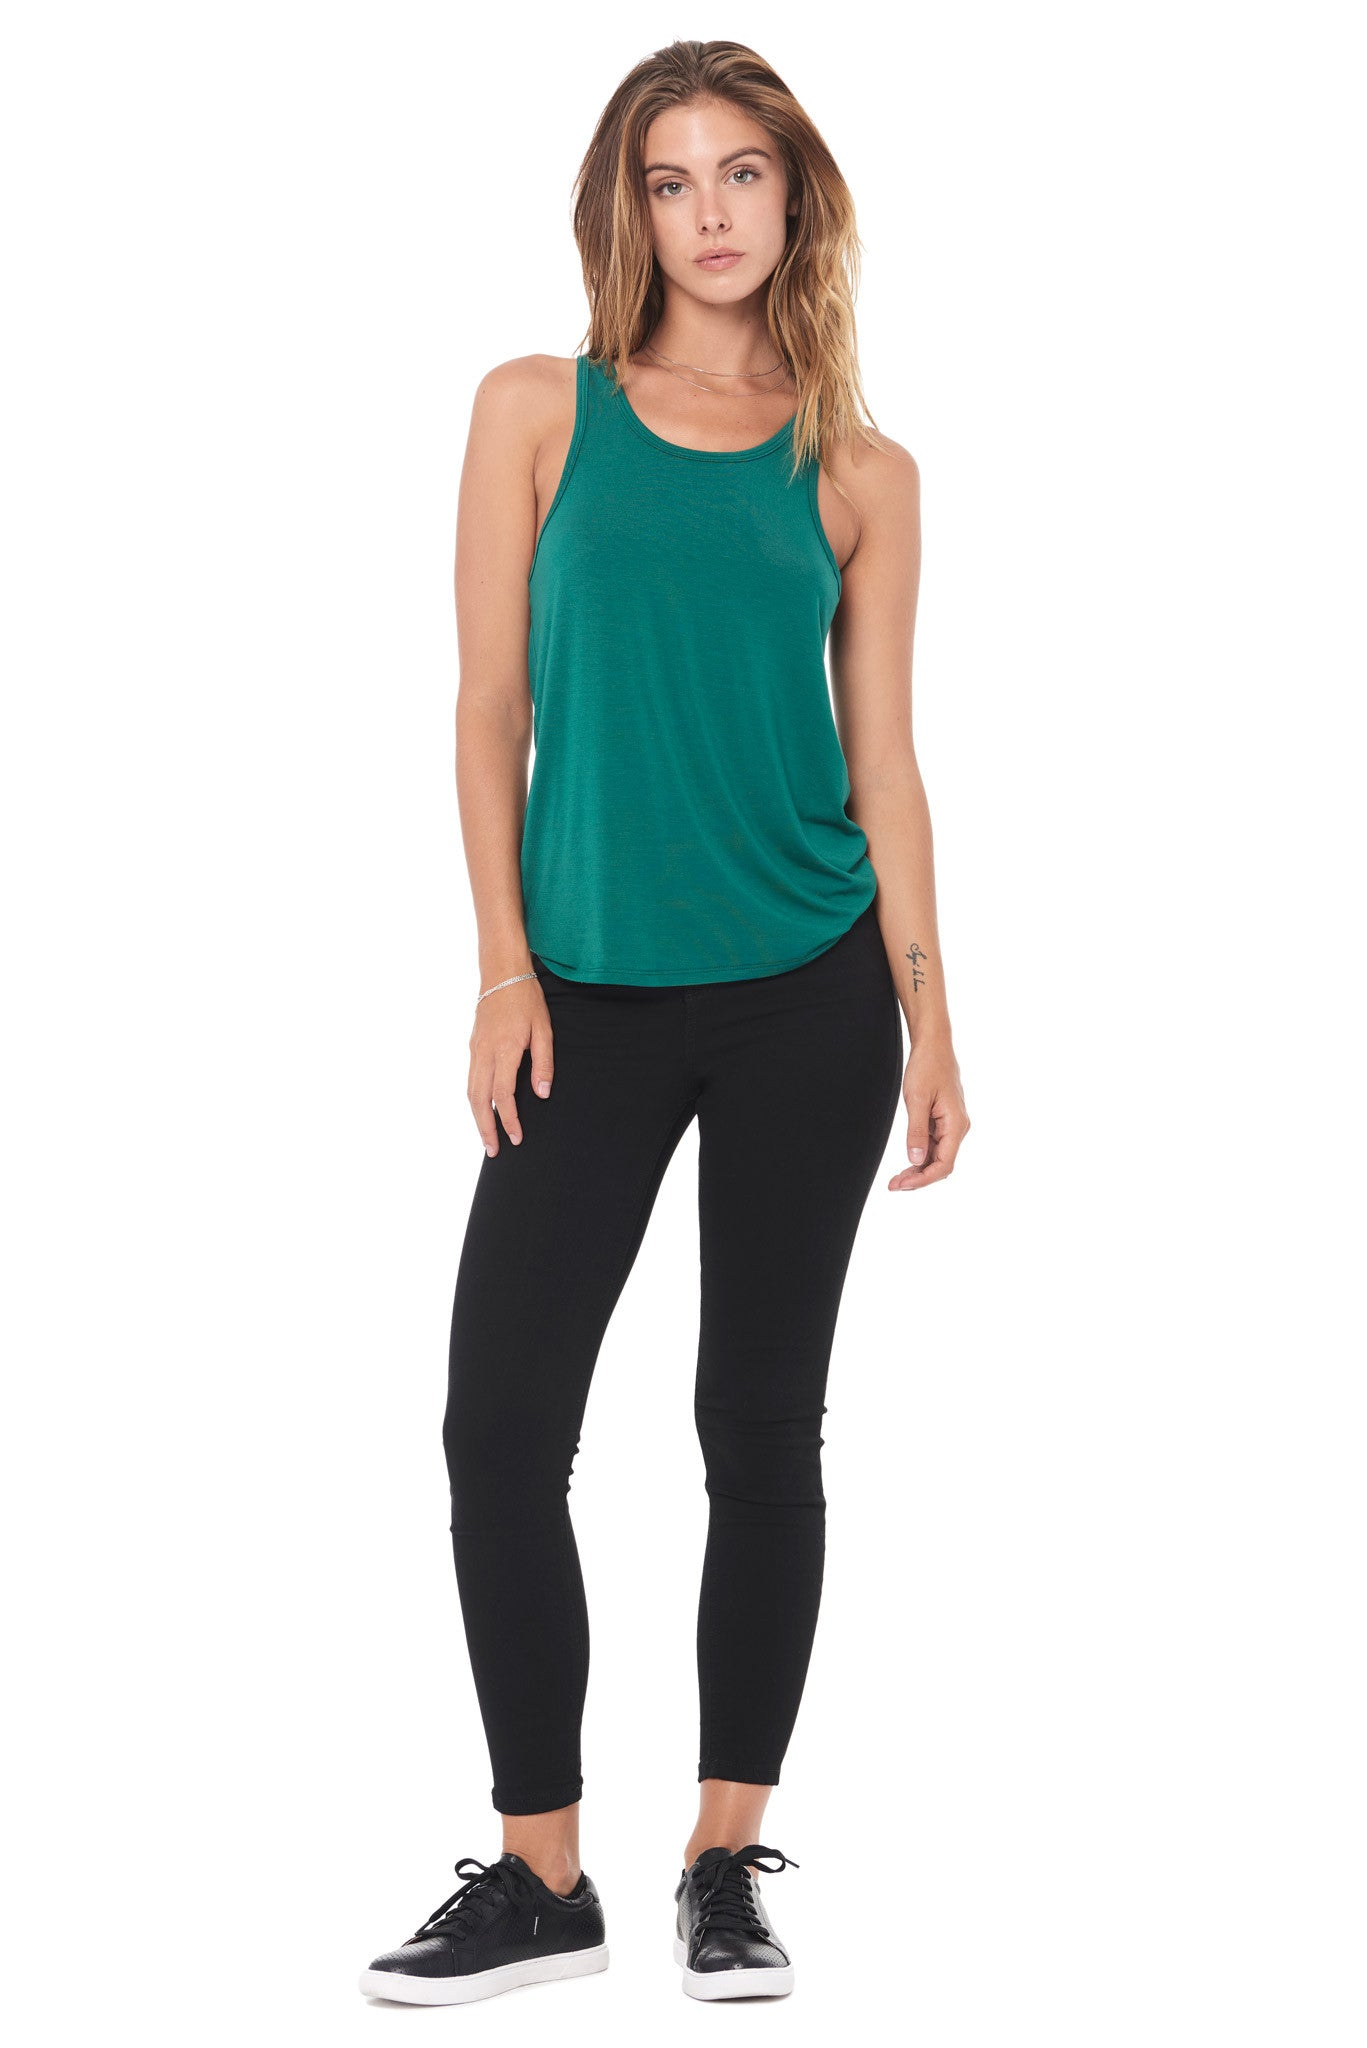 WOMEN'S MODAL SCOOP NECK TANK TOP - TEAL